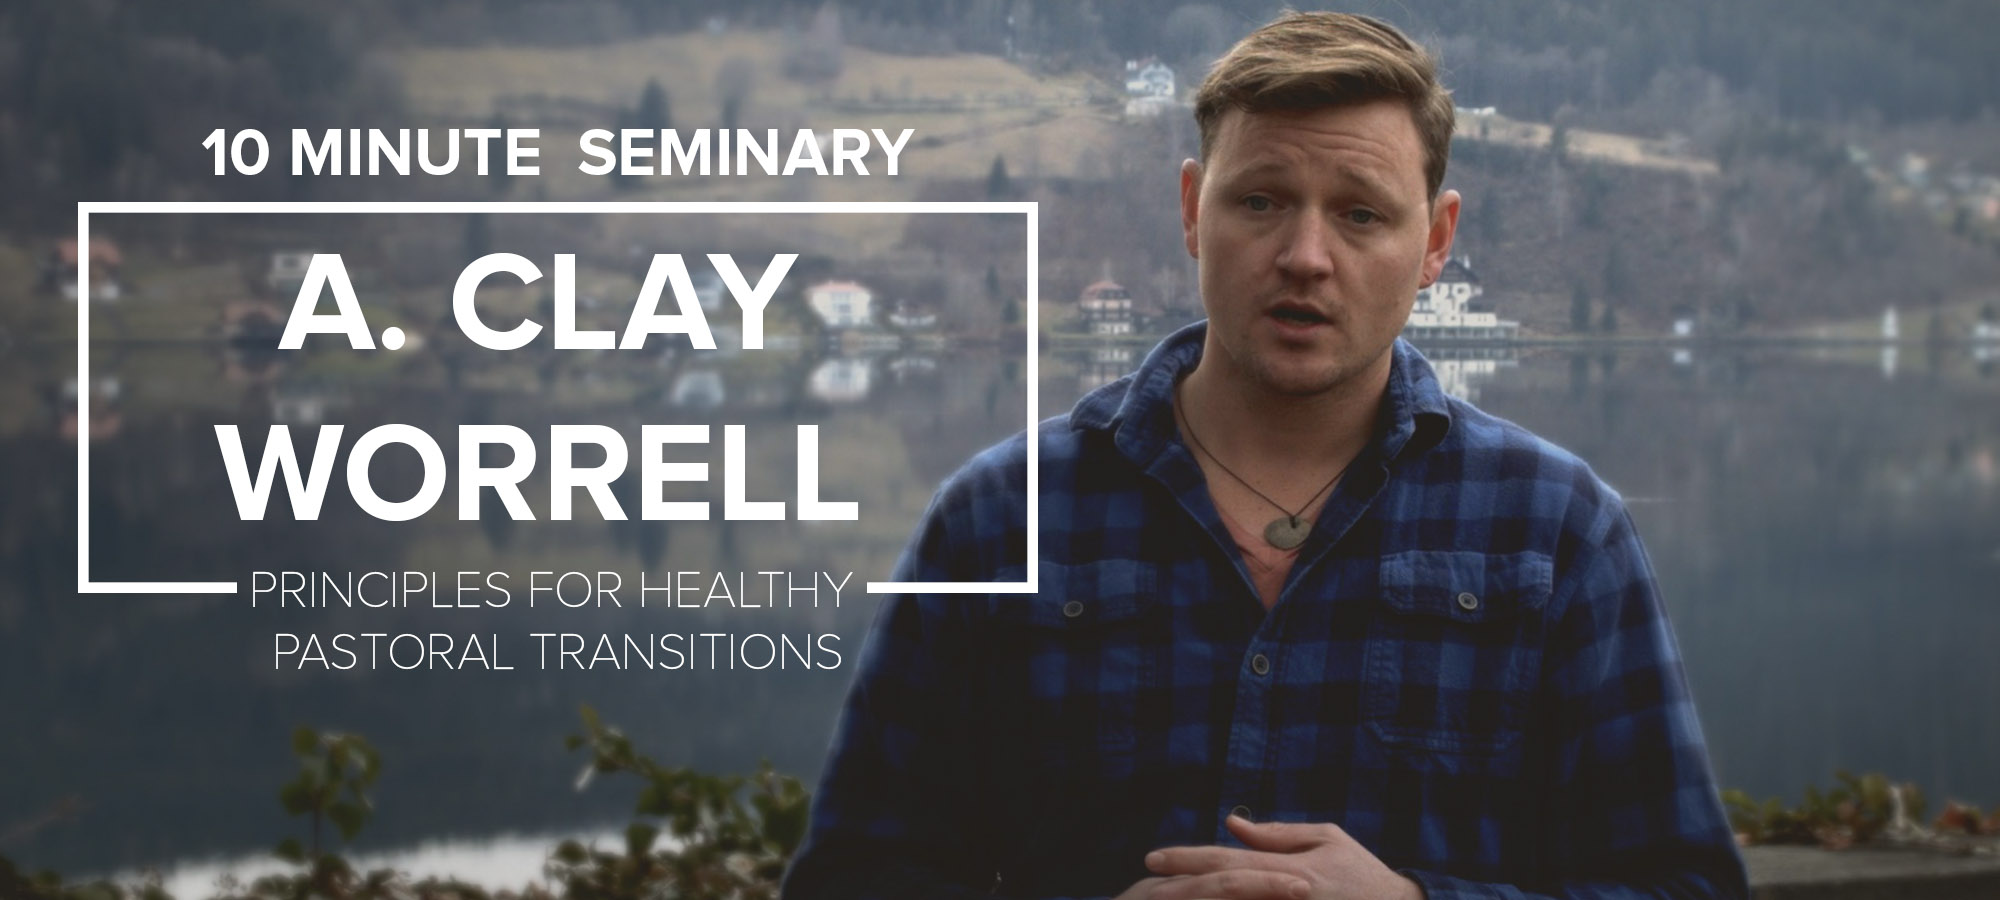 10 Minute Seminary: Principles for Healthy Pastoral Transitions